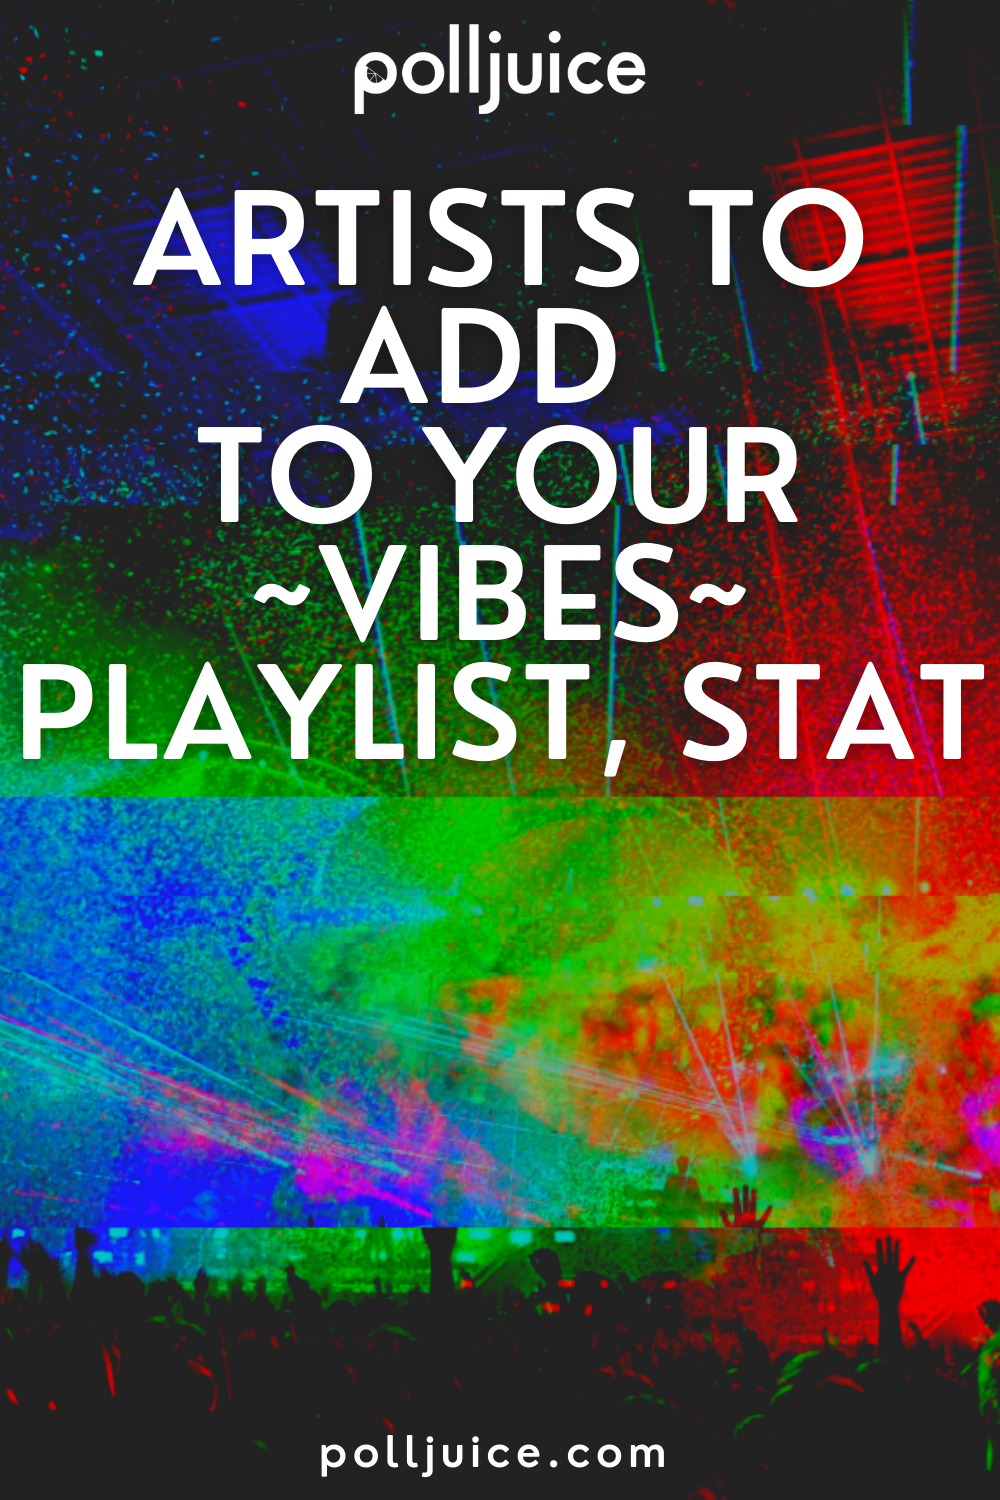 Underground Artists on Spotify to Add to Your Vibes